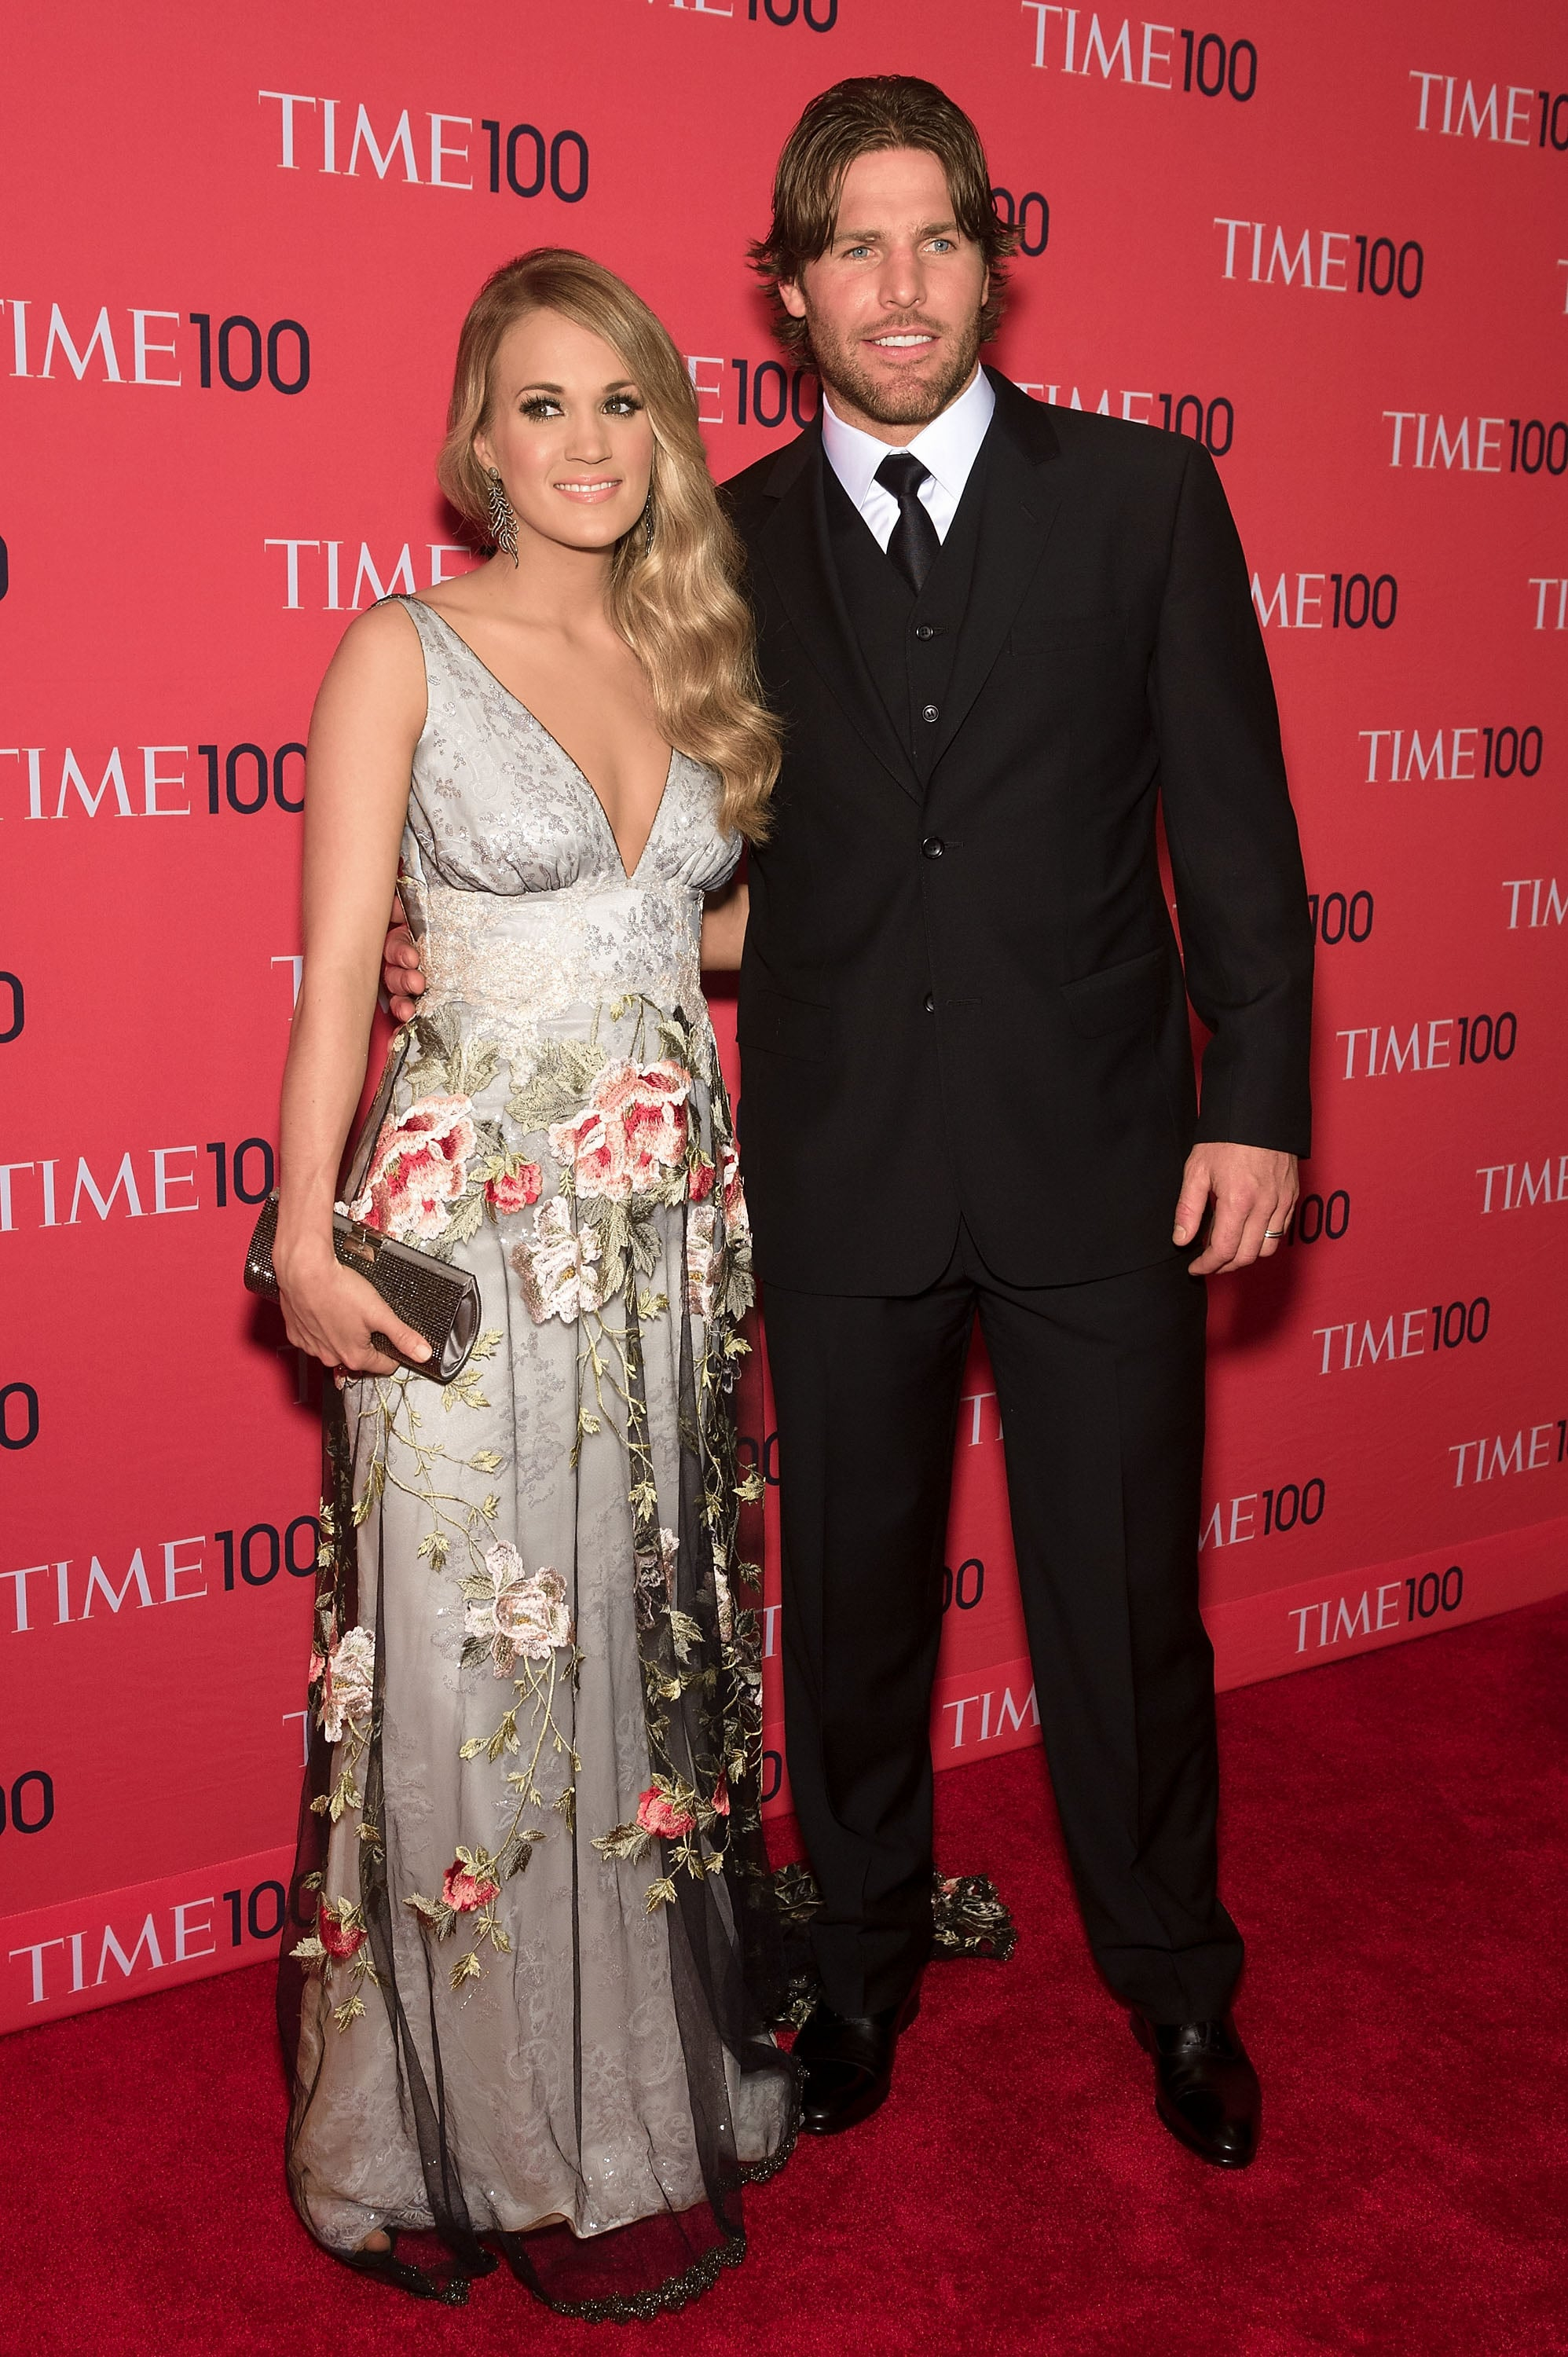 NEW YORK, NY - APRIL 29:  Carrie Underwood (L) and husband Mike Fisher attend the 2014 Time 100 Gala at Frederick P. Rose Hall, Jazz at Lincoln Center on April 29, 2014 in New York City.  (Photo by D Dipasupil/FilmMagic)